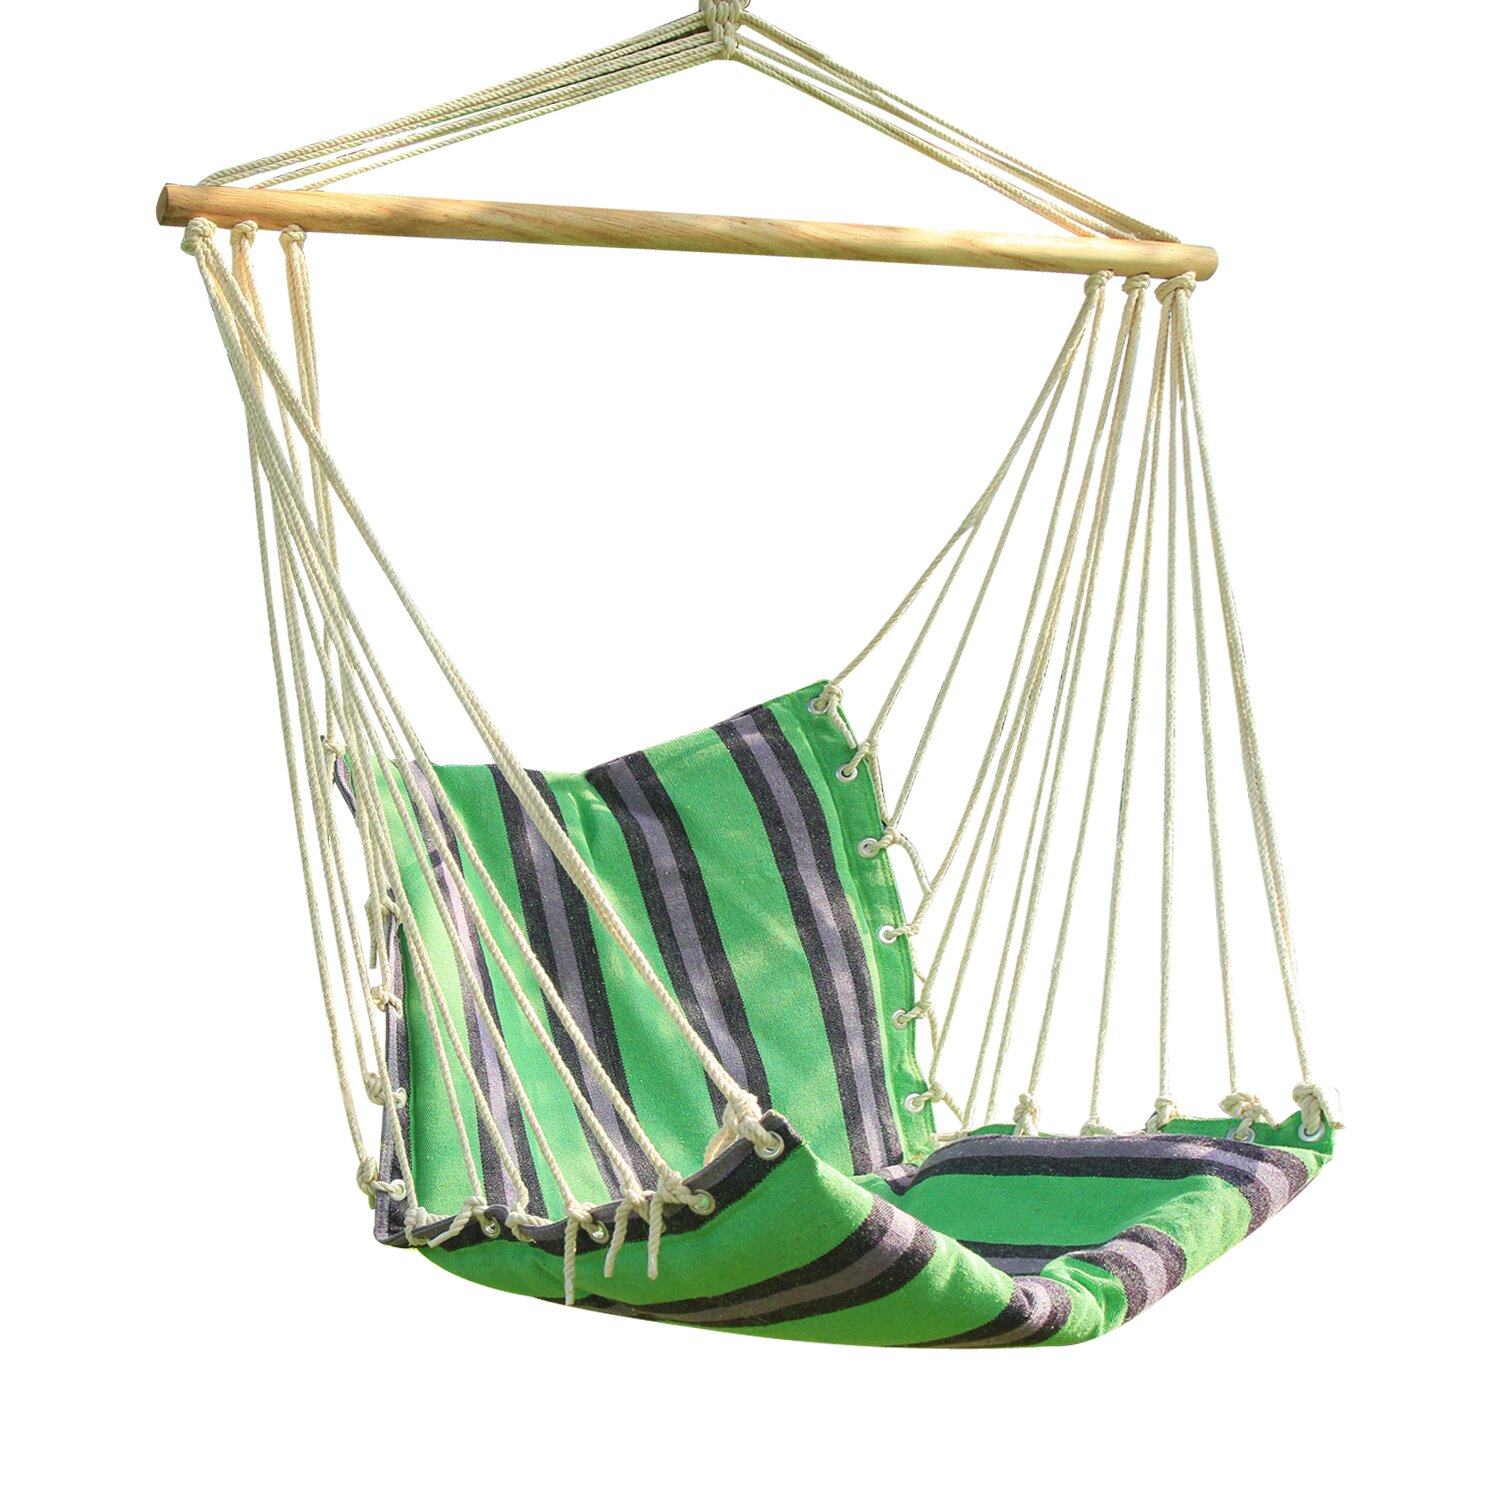 Tree Hanging Suspended Indoor Outdoor Hammock Chair By AdecoTrading